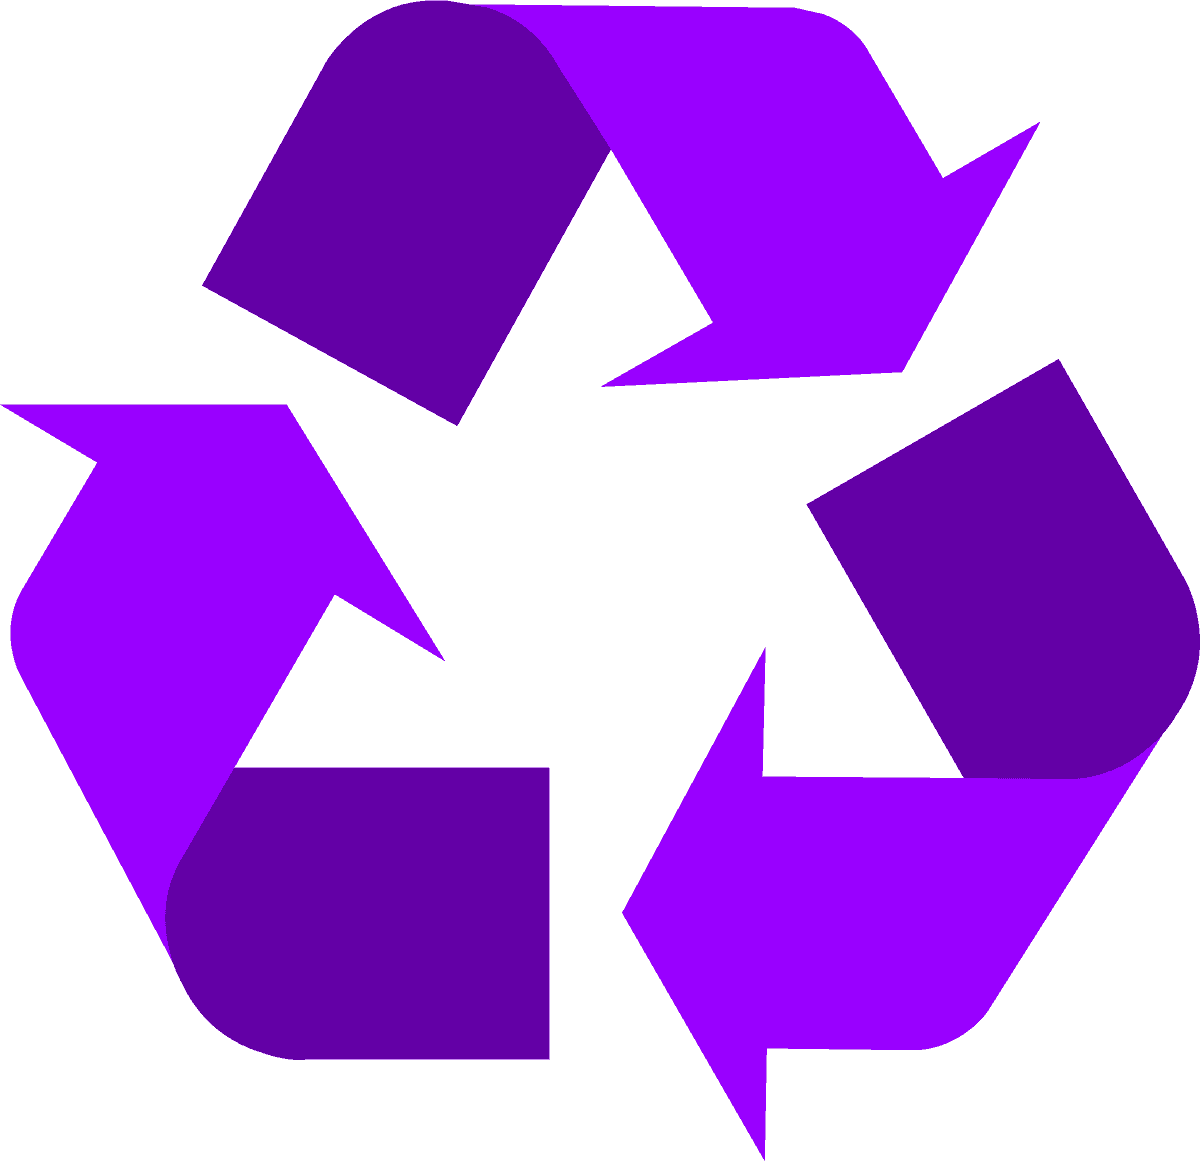 recycling-symbol-icon-twotone-purple